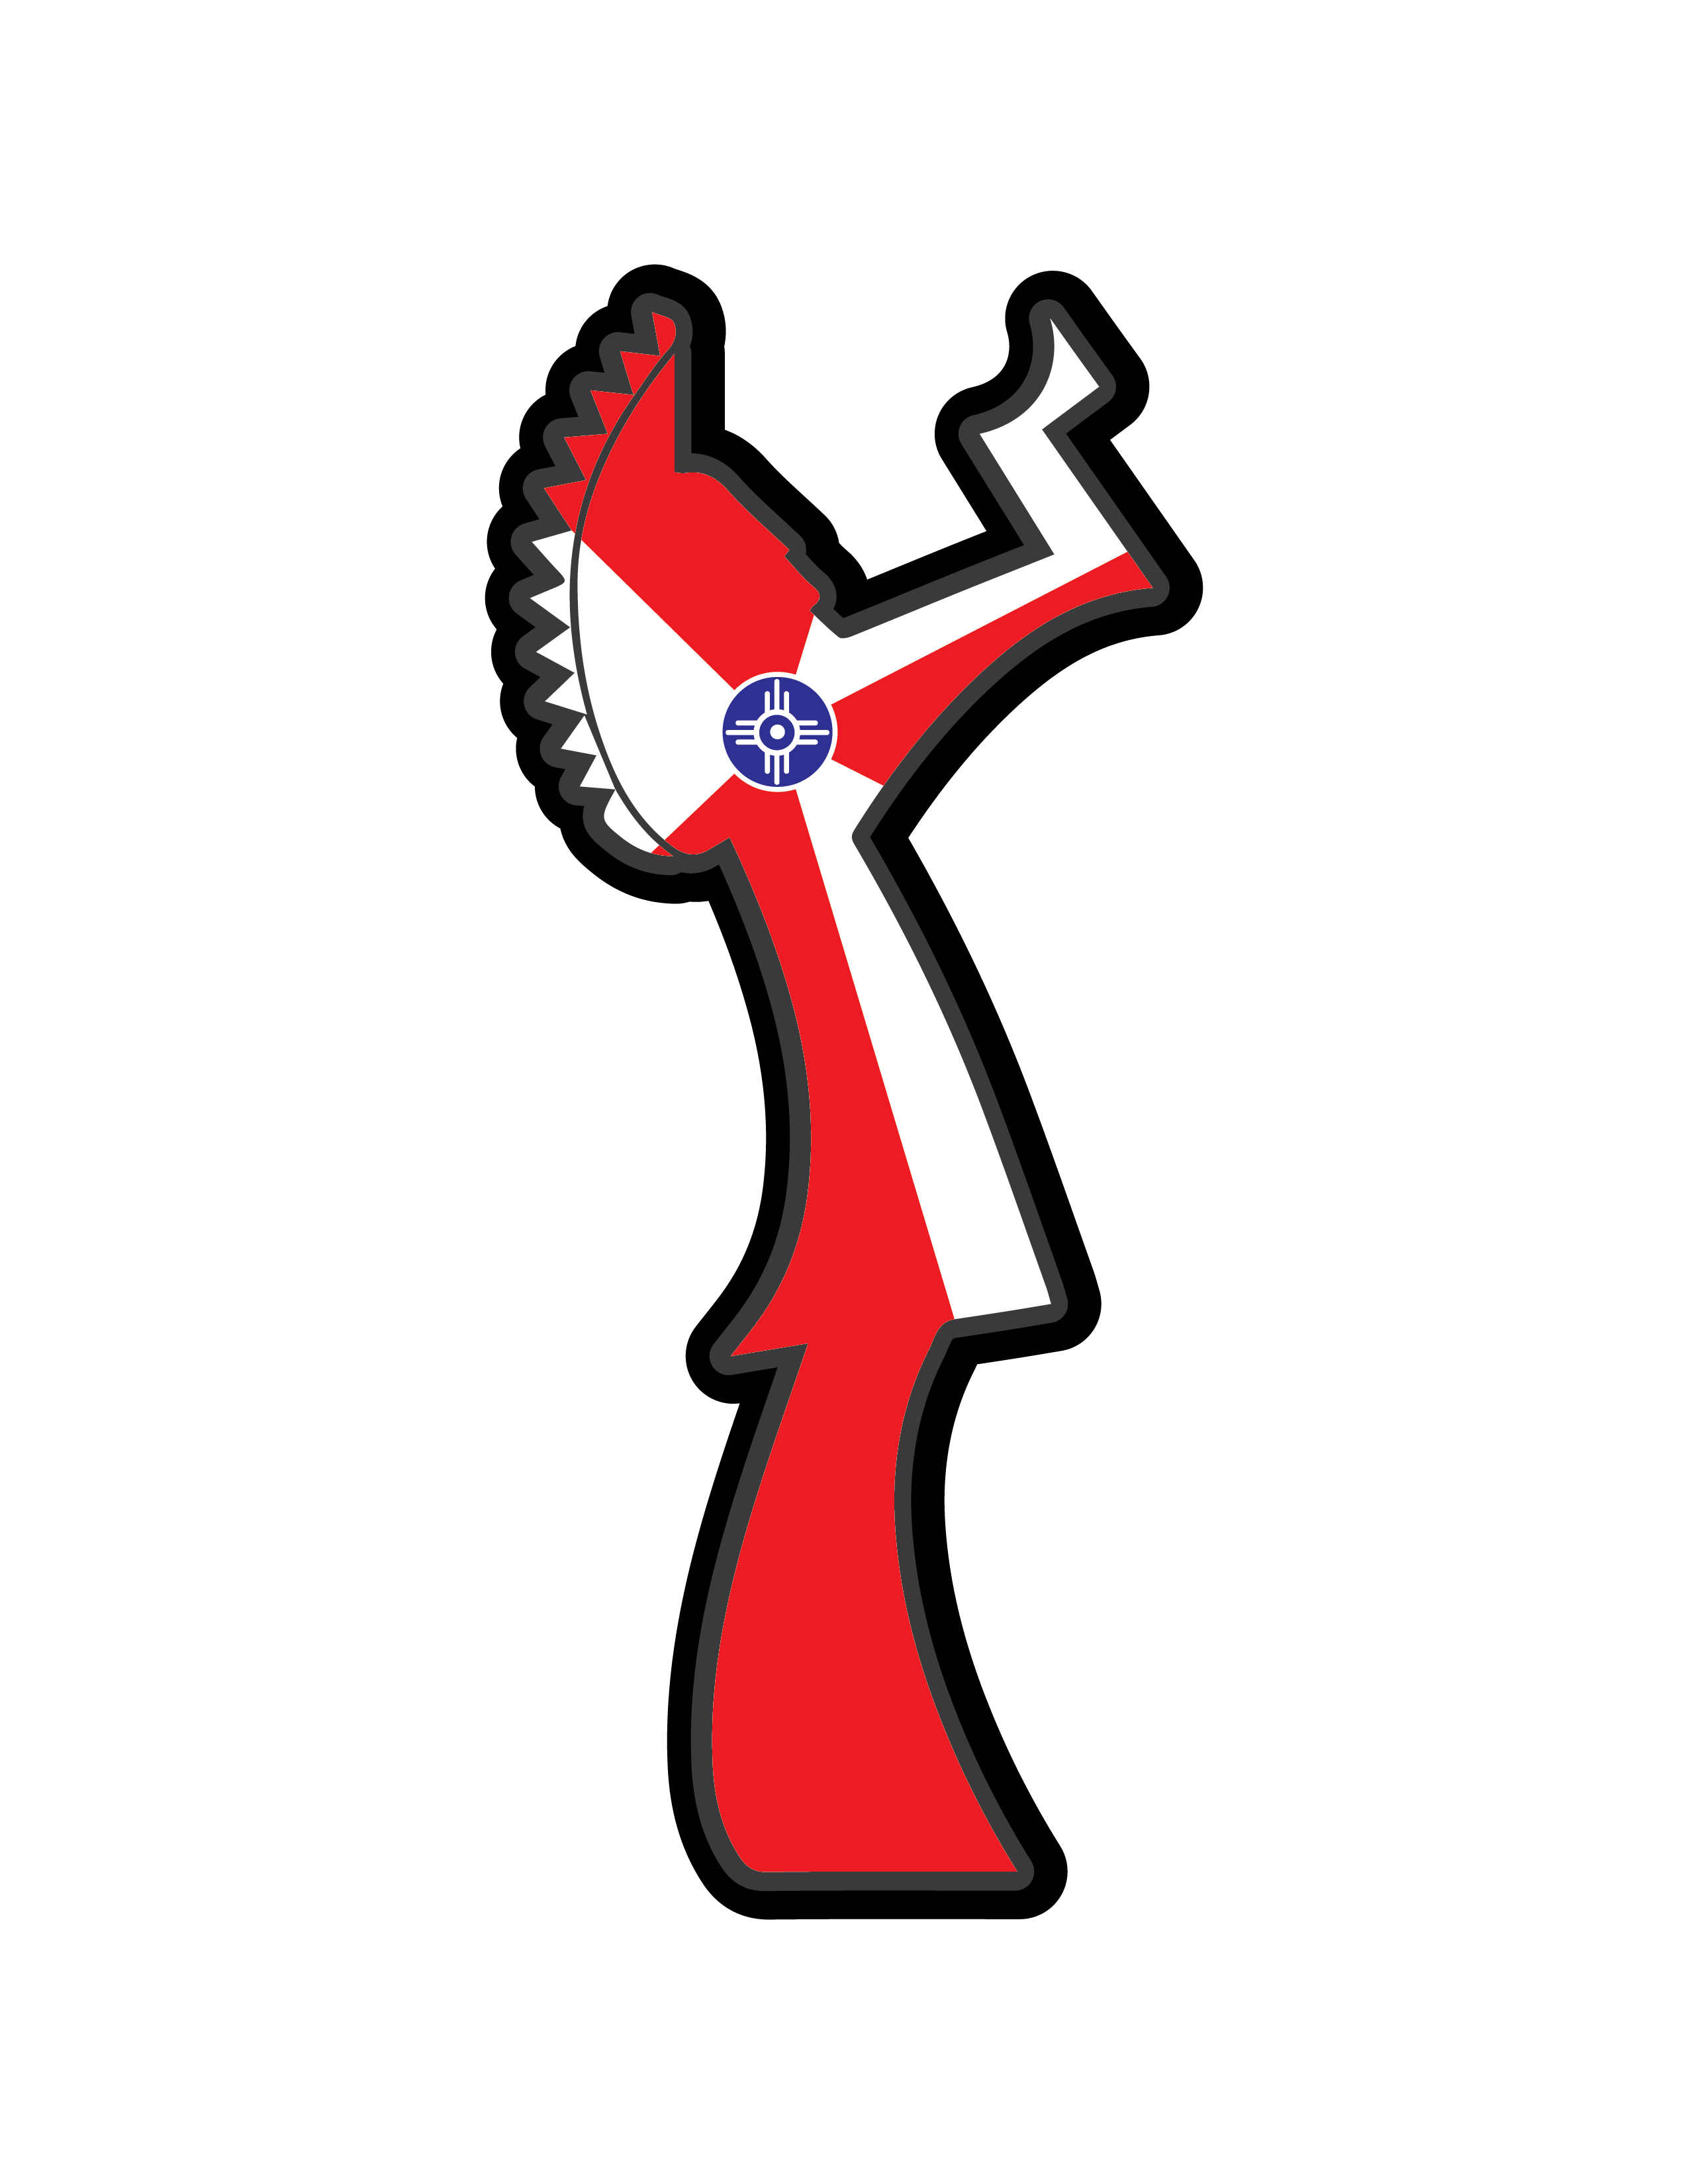 Wichita keeper of the. Mailbox clipart up flag